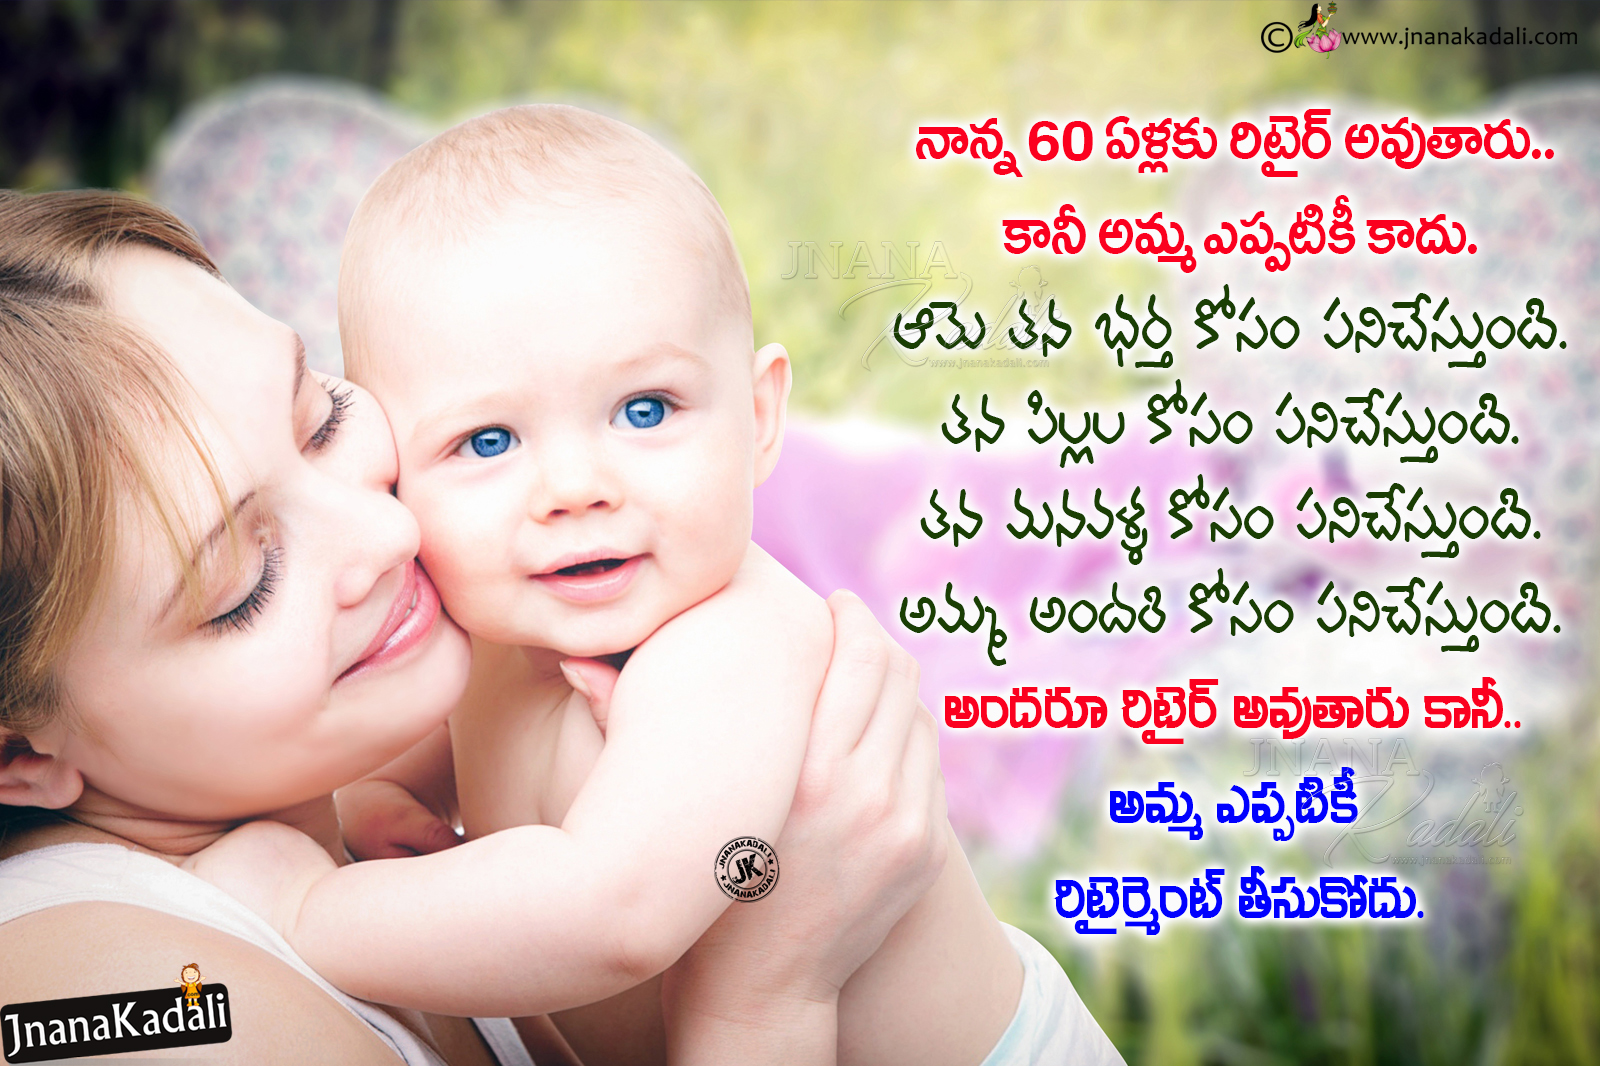 Cute Baby Images With Love Quotes In Telugu | Imaganationface org